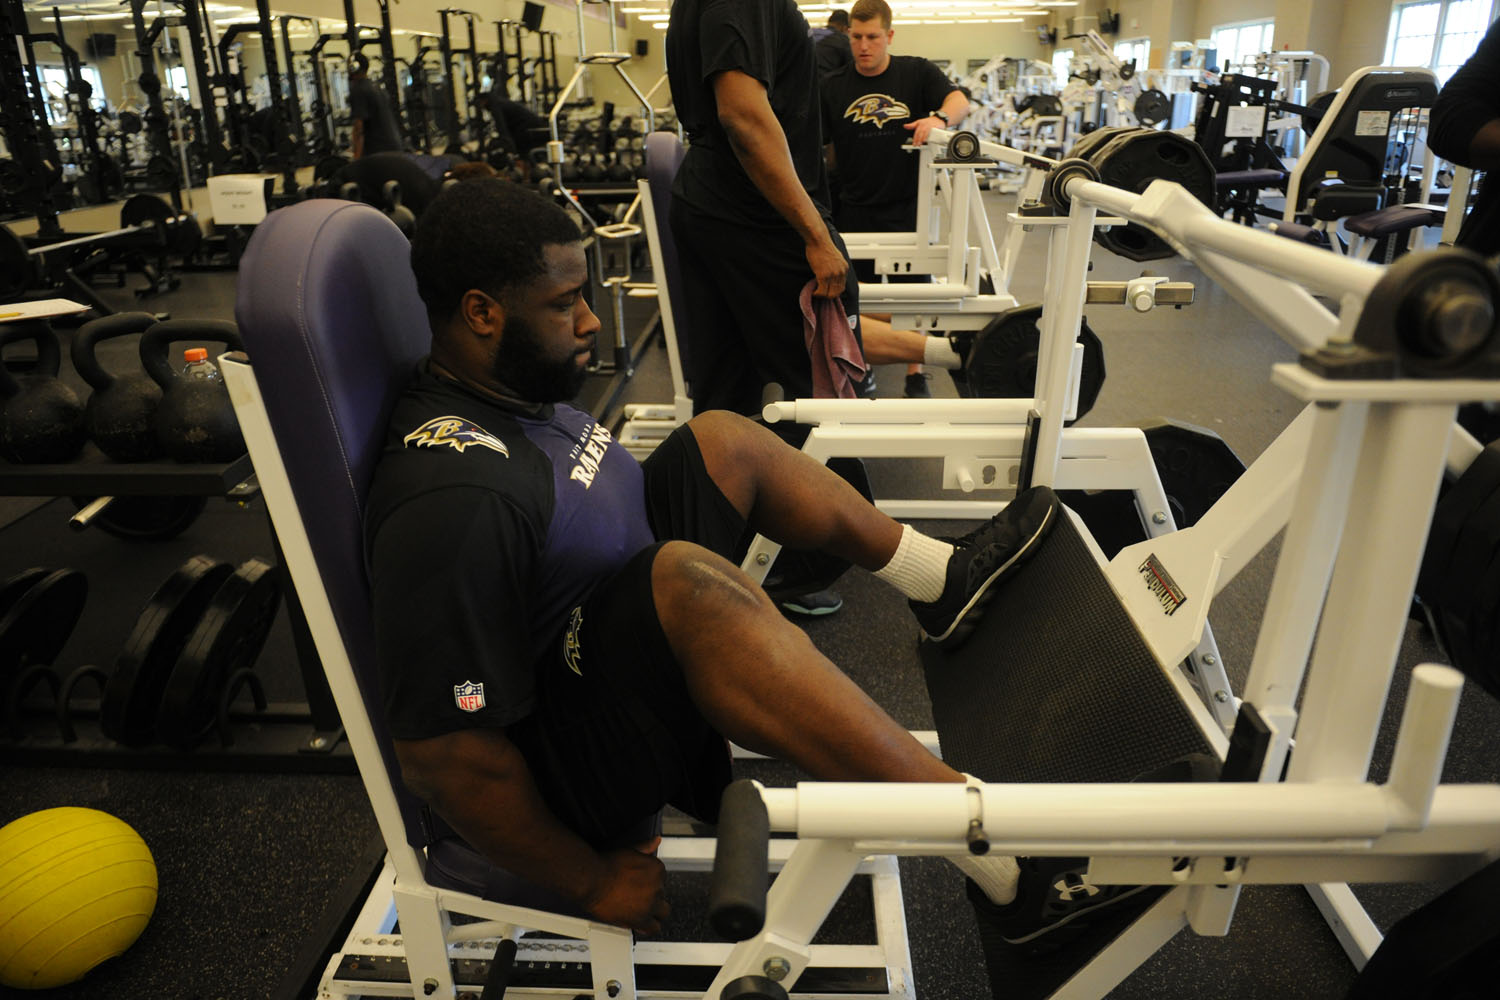 After tearing his ACL in the 2013 BCS Championship against Alabama, rookie defensive end Lewis-Moore will start his professional career on injured reserve. He's pictured here doing some knee strengthening exercises in hopes of getting back in time for the upcoming season.